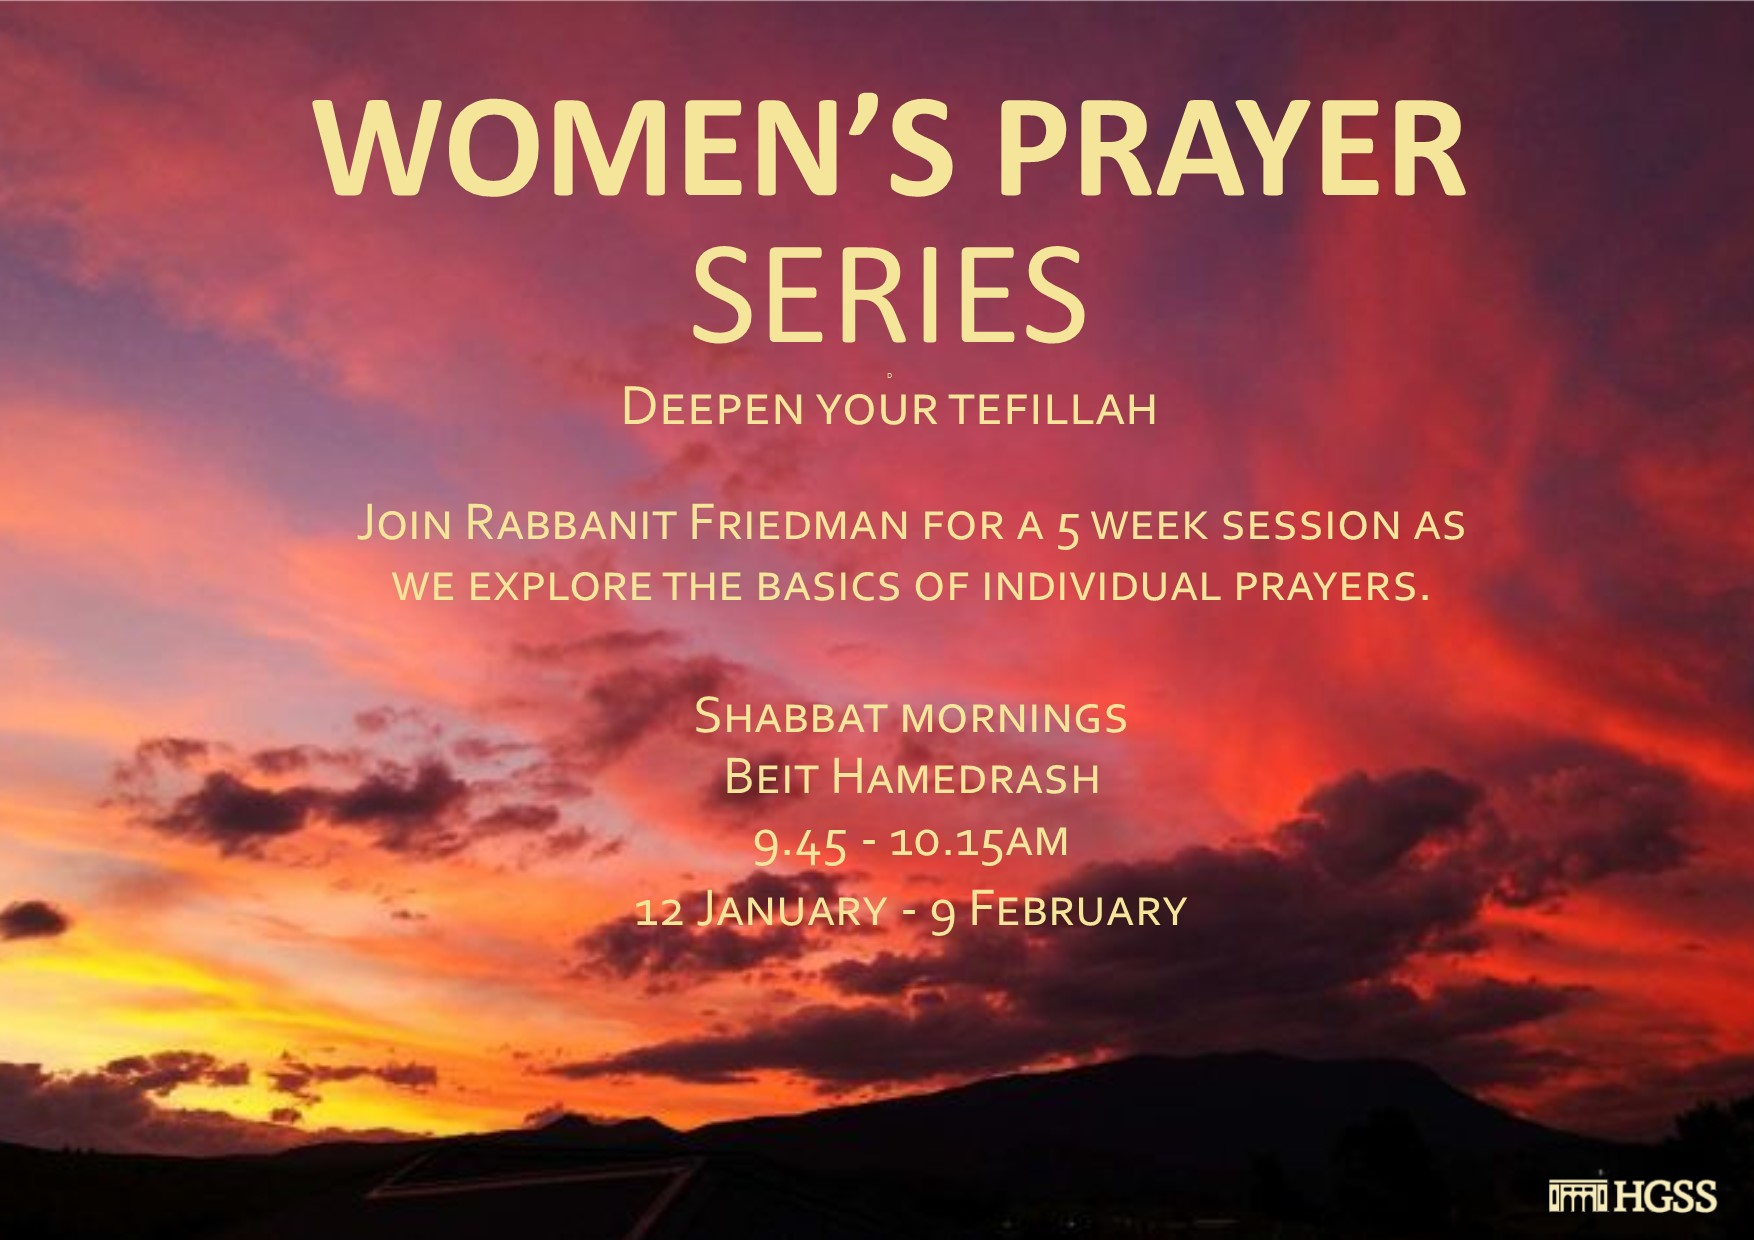 Women's Prayer Series @ HGSS